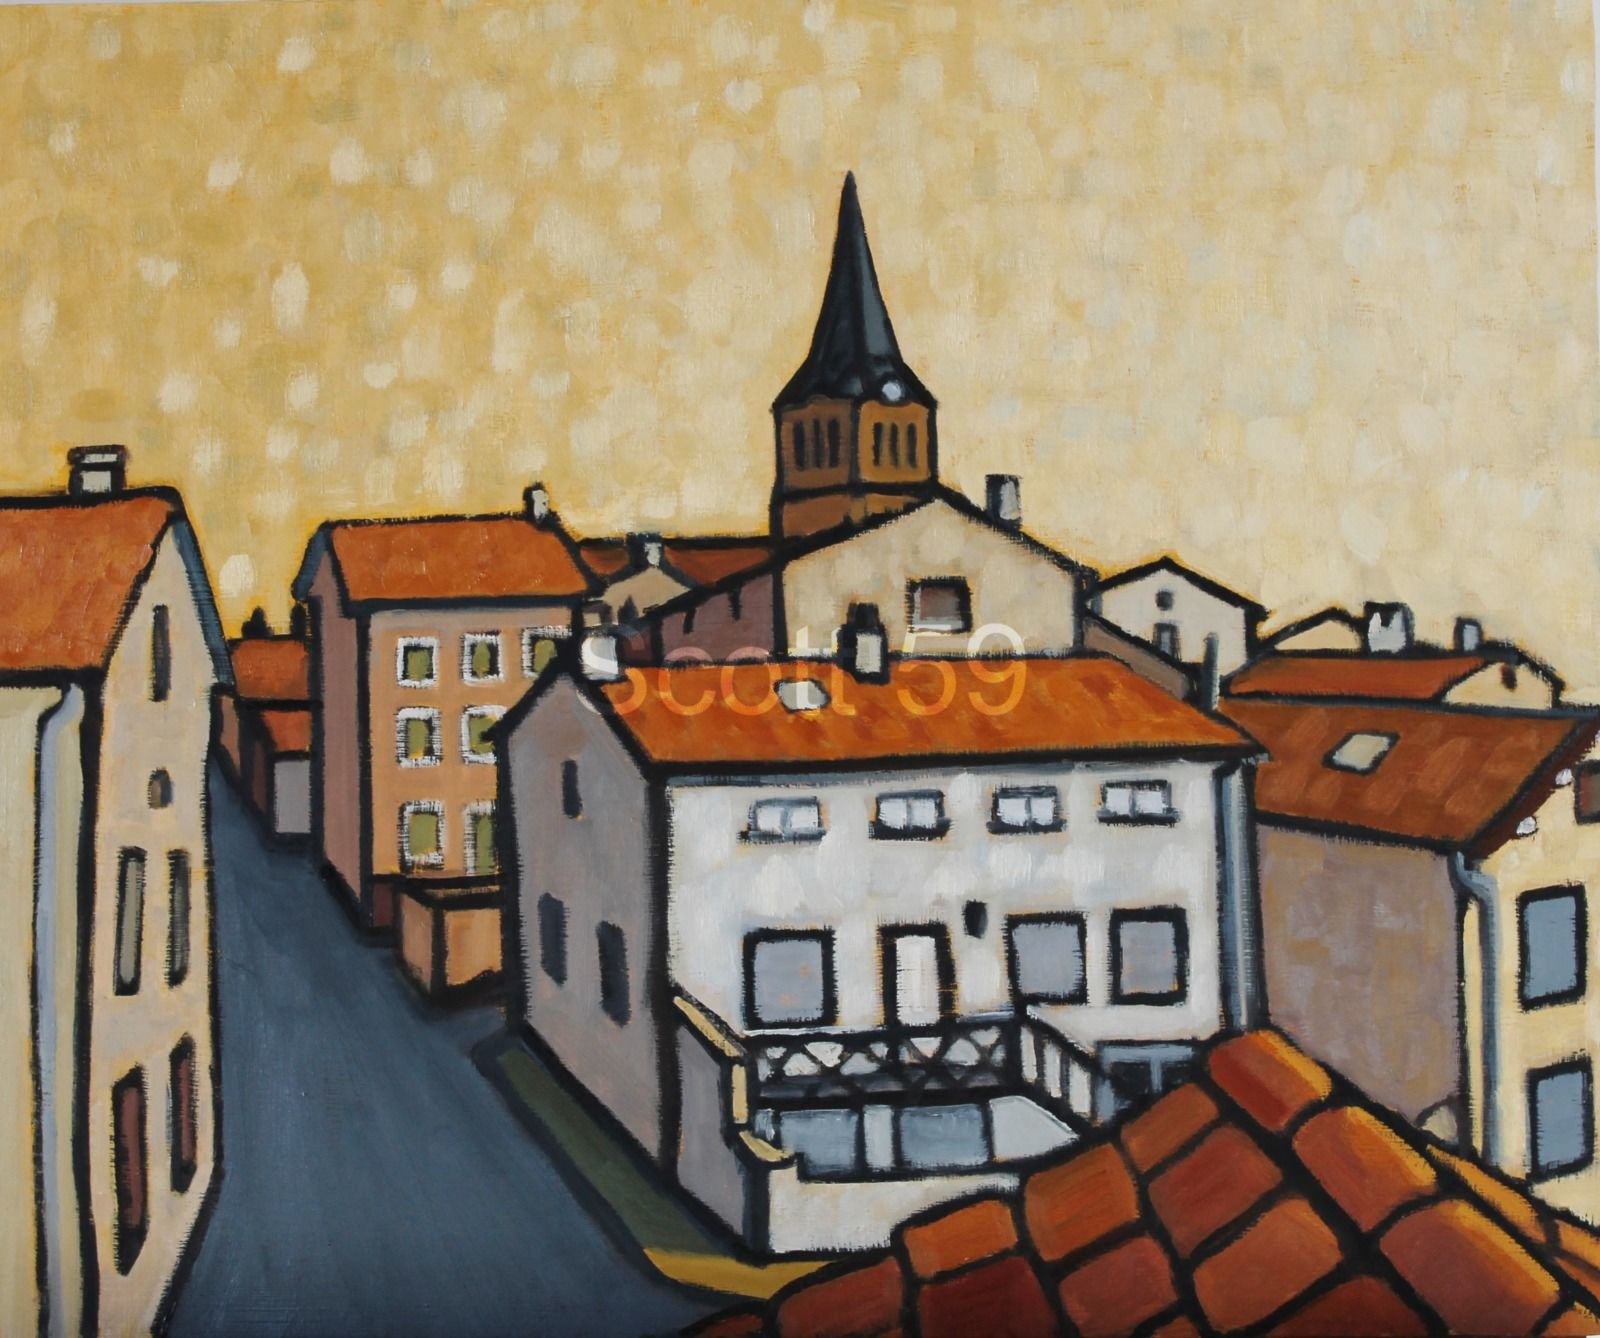 Vernassal de l'ecole (Oil on board 61cm x 51cm)